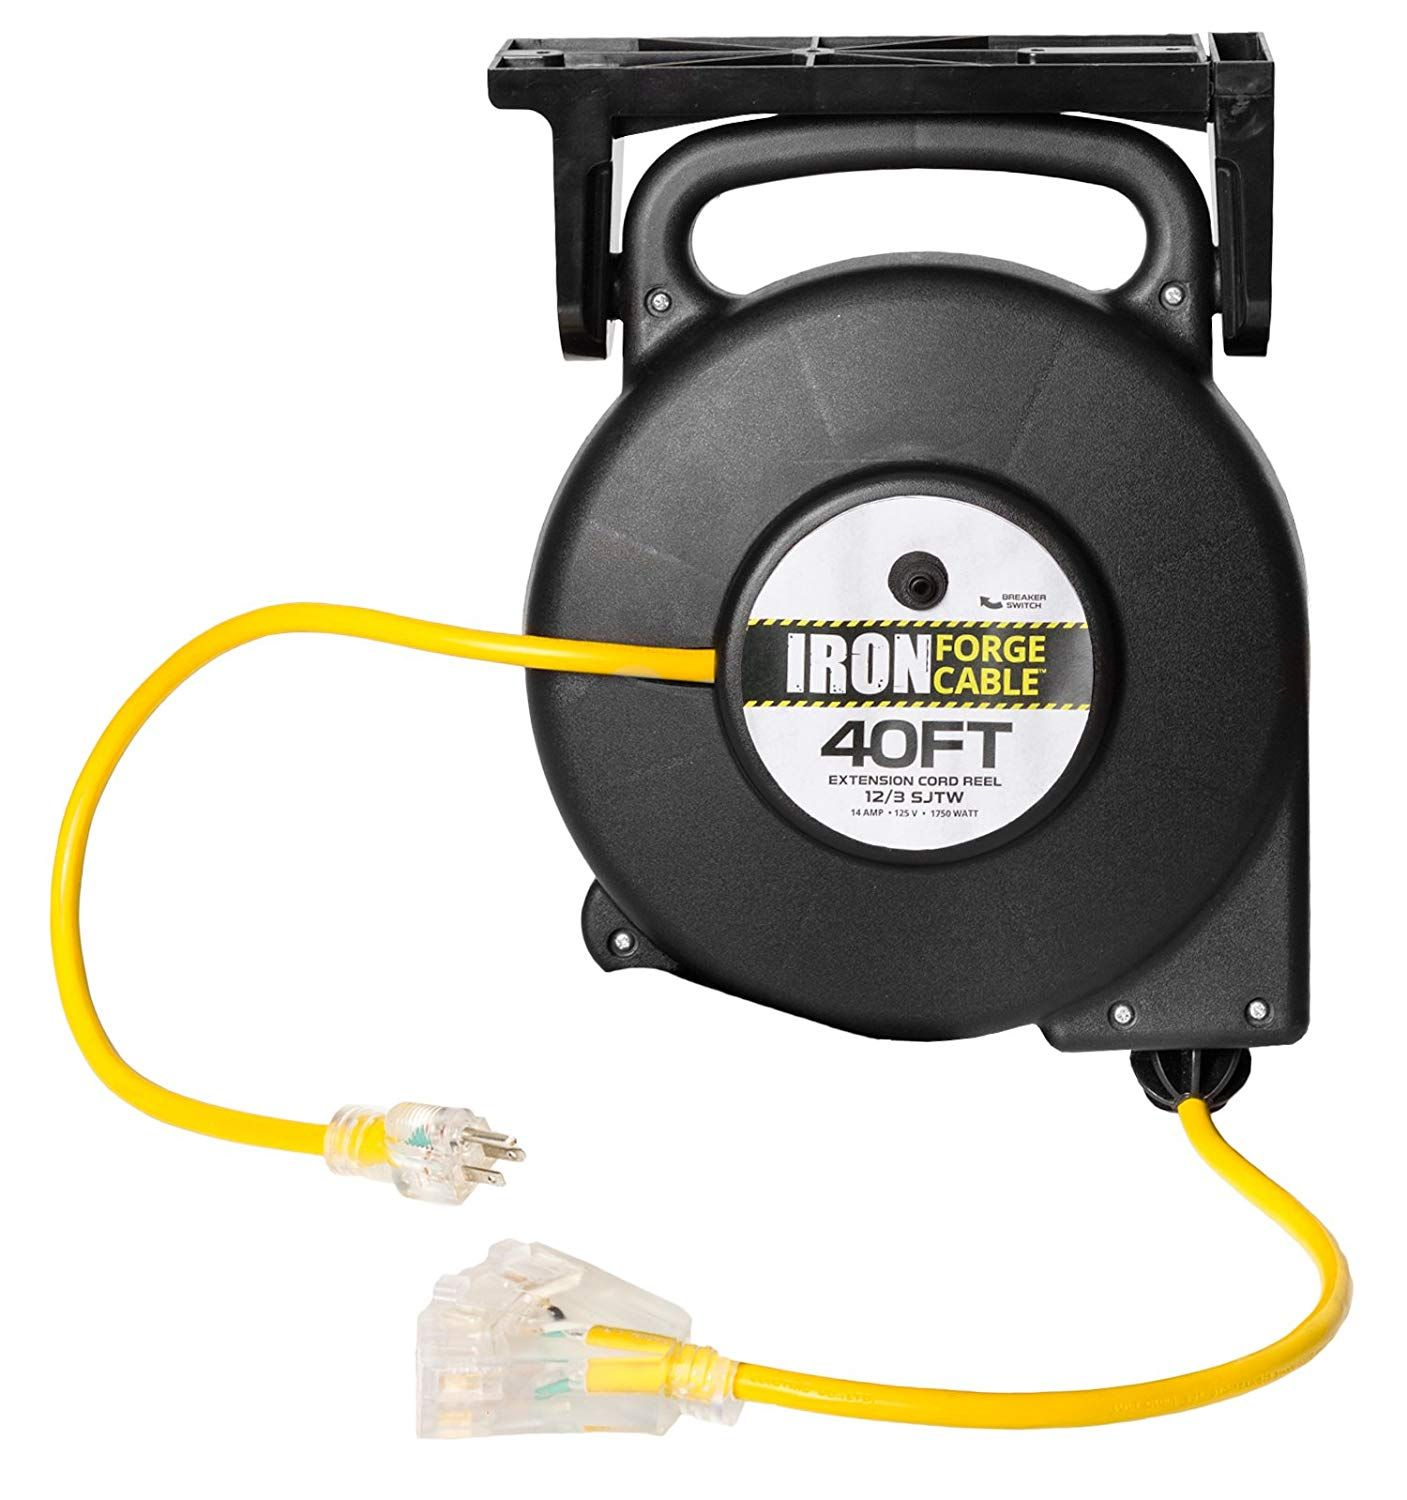 40 Ft Retractable Extension Cord Reel 2 In 1 Mountable And Portable Power Cord Reel With 3 Electrical Extension Cord Reels Electrical Outlets Extension Cord